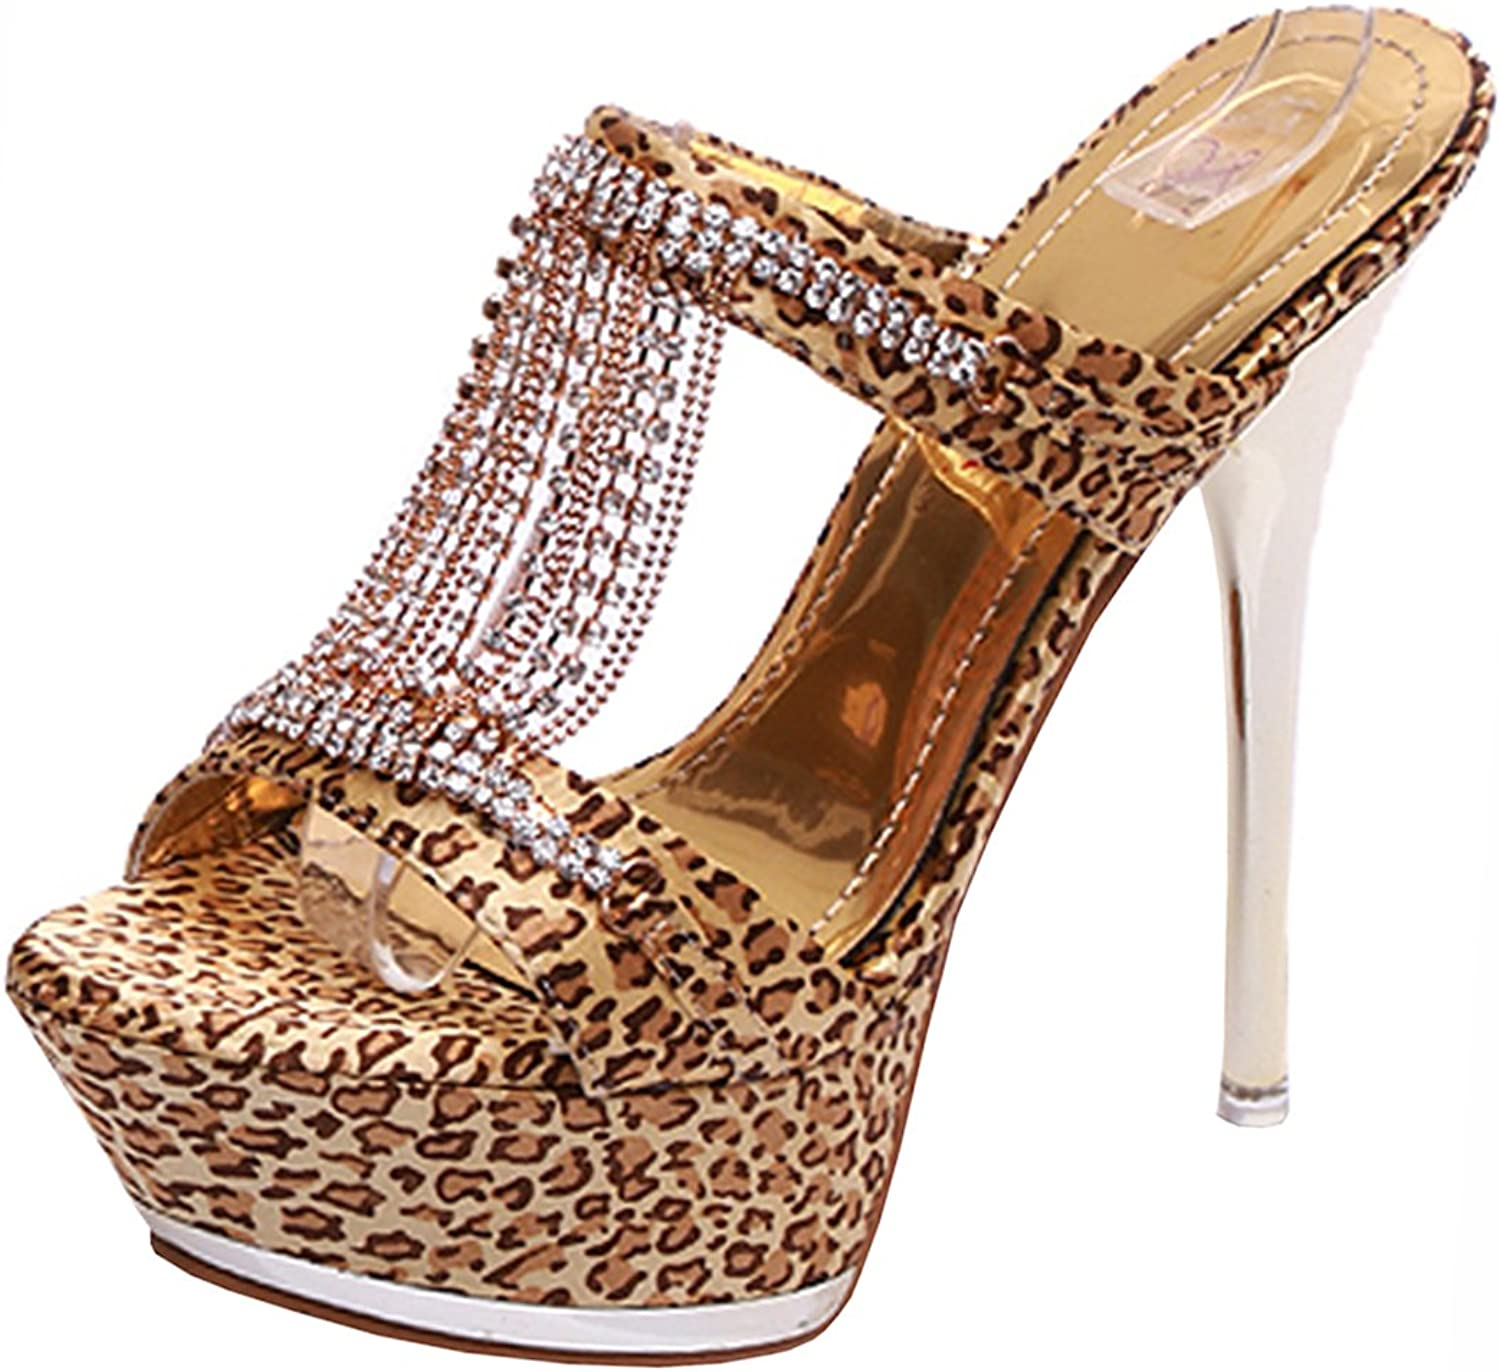 Atyche Women's Extremely High Heels Slingback Mules Open Toe Pumps with Rhinestones Stiletto Slippers